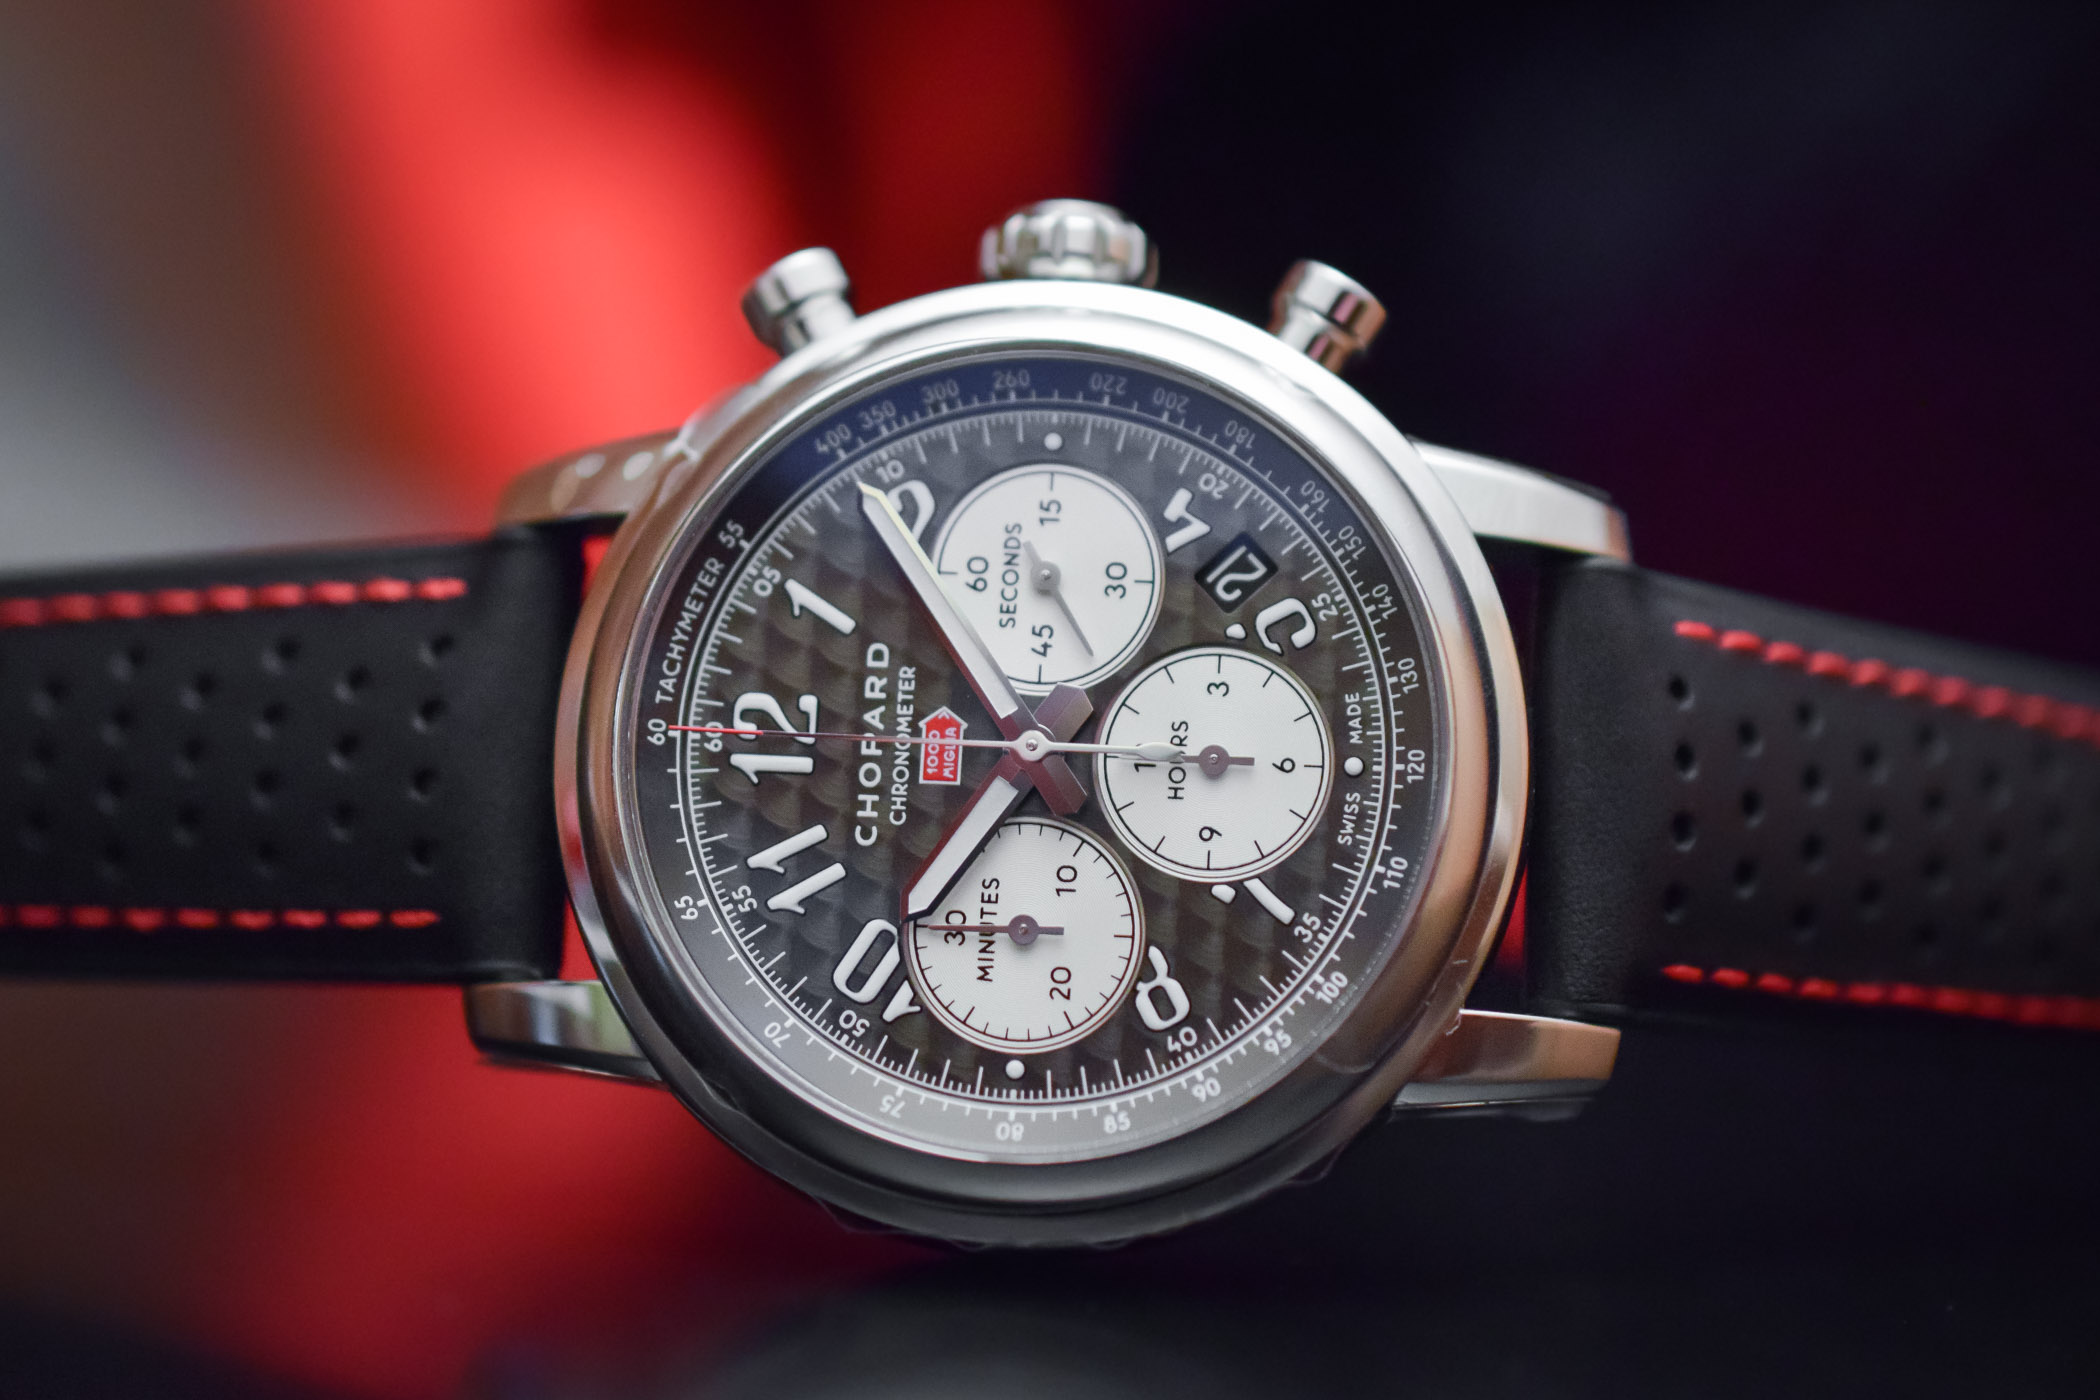 Chopard Mille Miglia Chronograph 2018 Race Edition